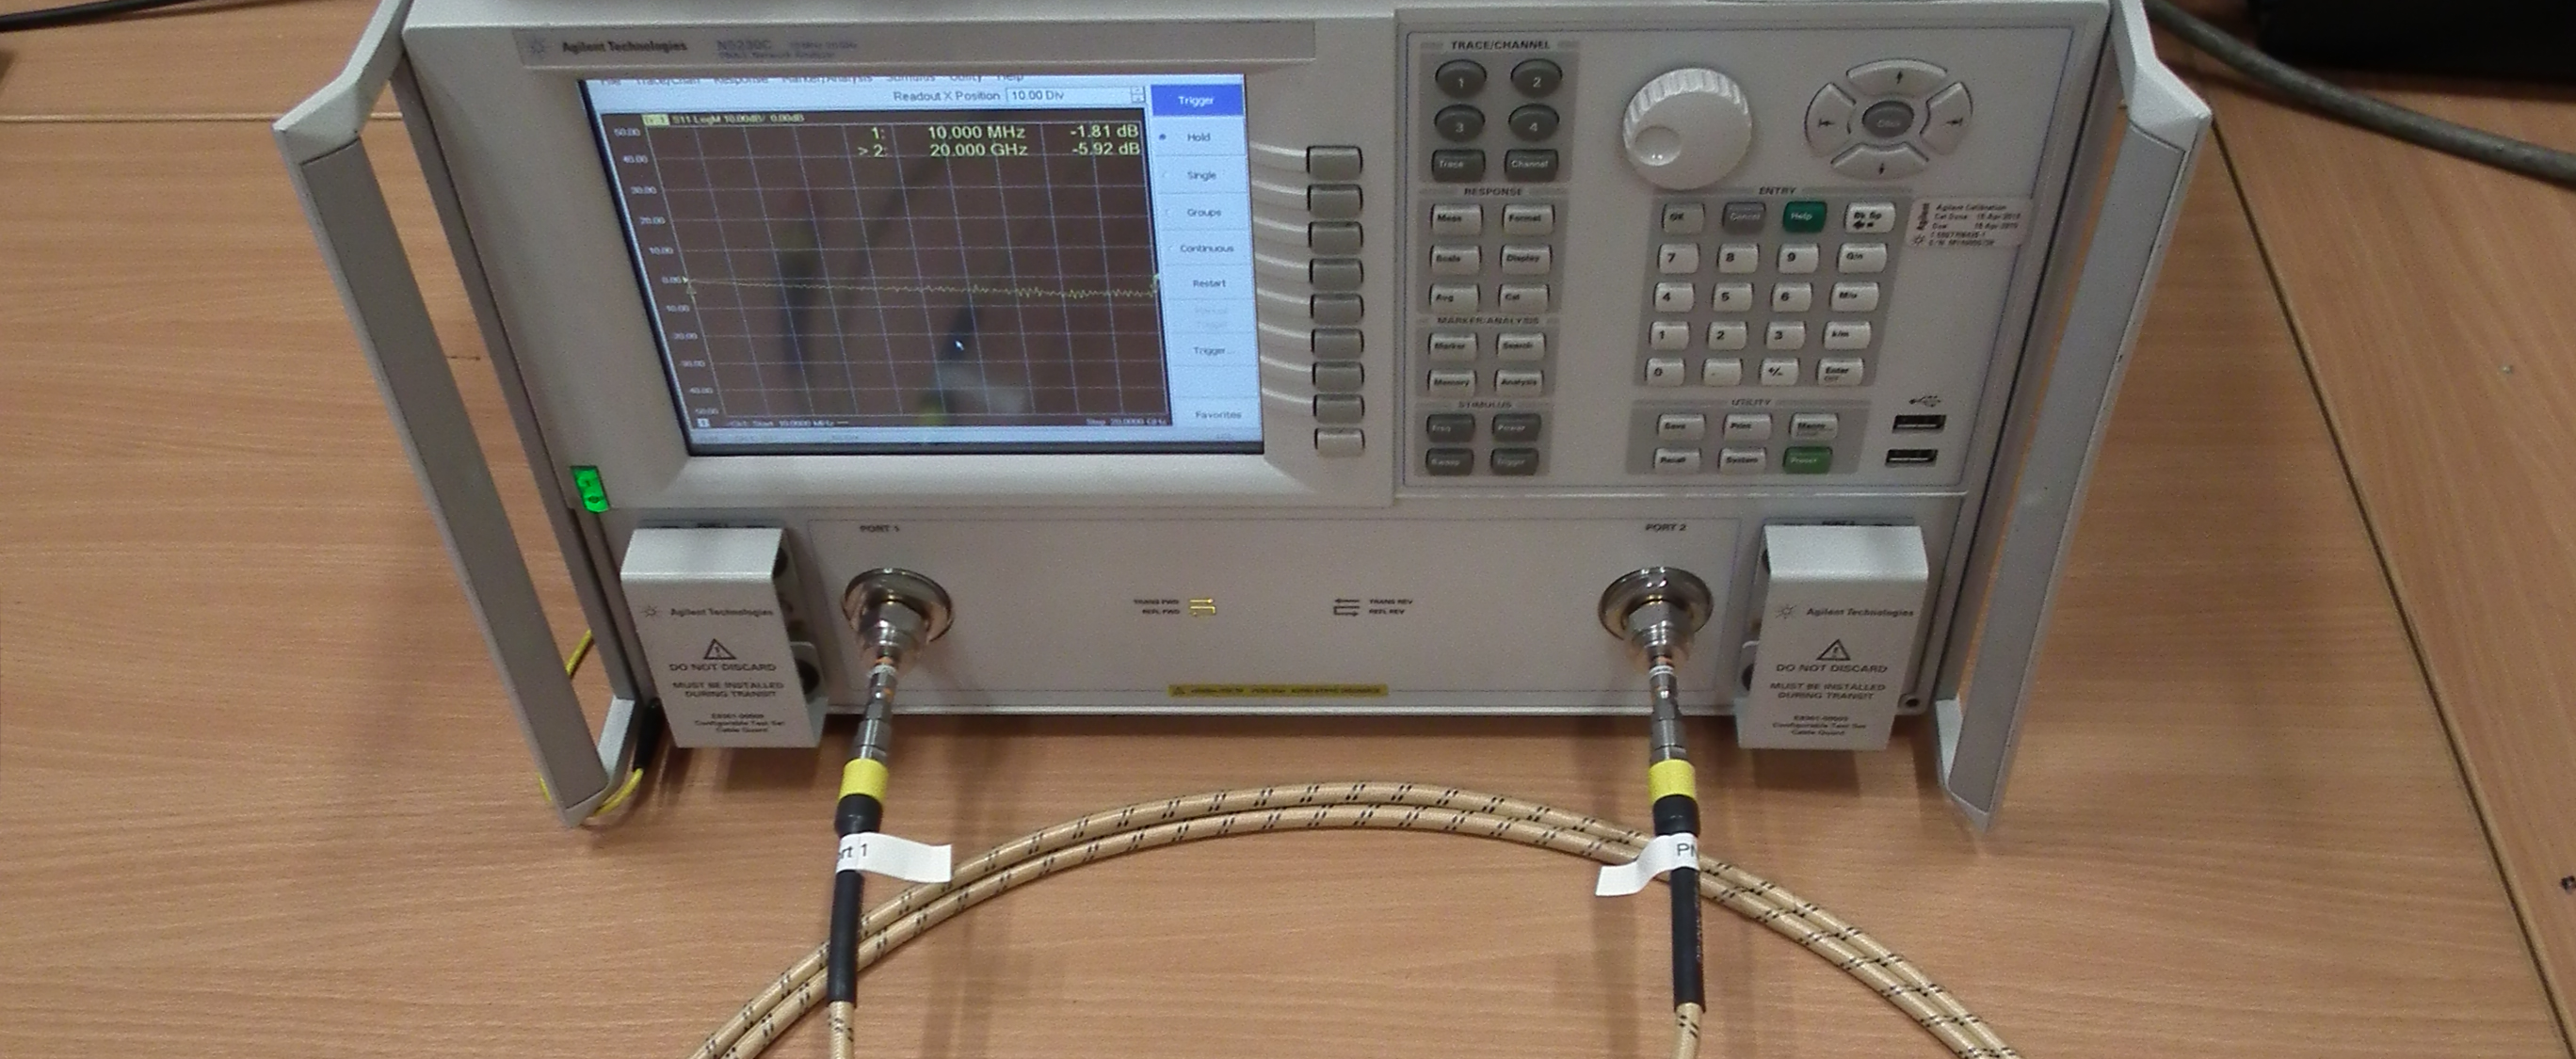 Microwave and mm-wave instrumentation